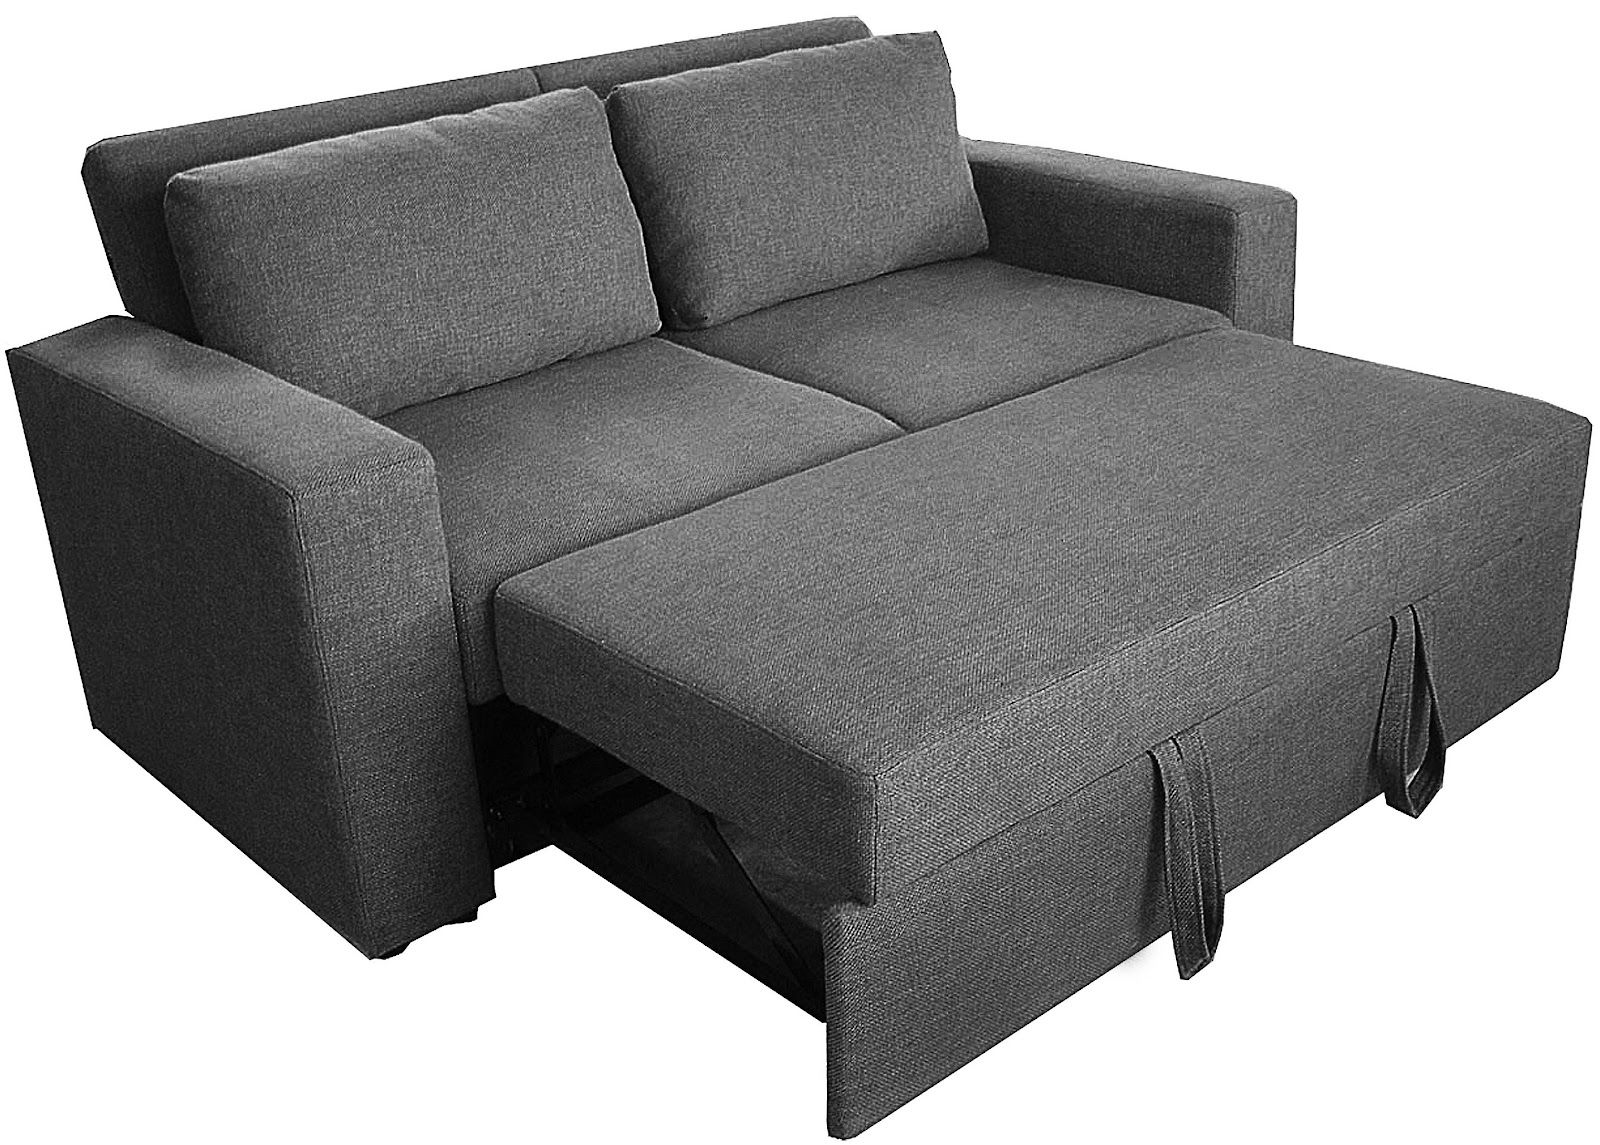 - Small Fold Out Couch Pull Out Sofa Bed, Ikea Sofa Bed, Solsta